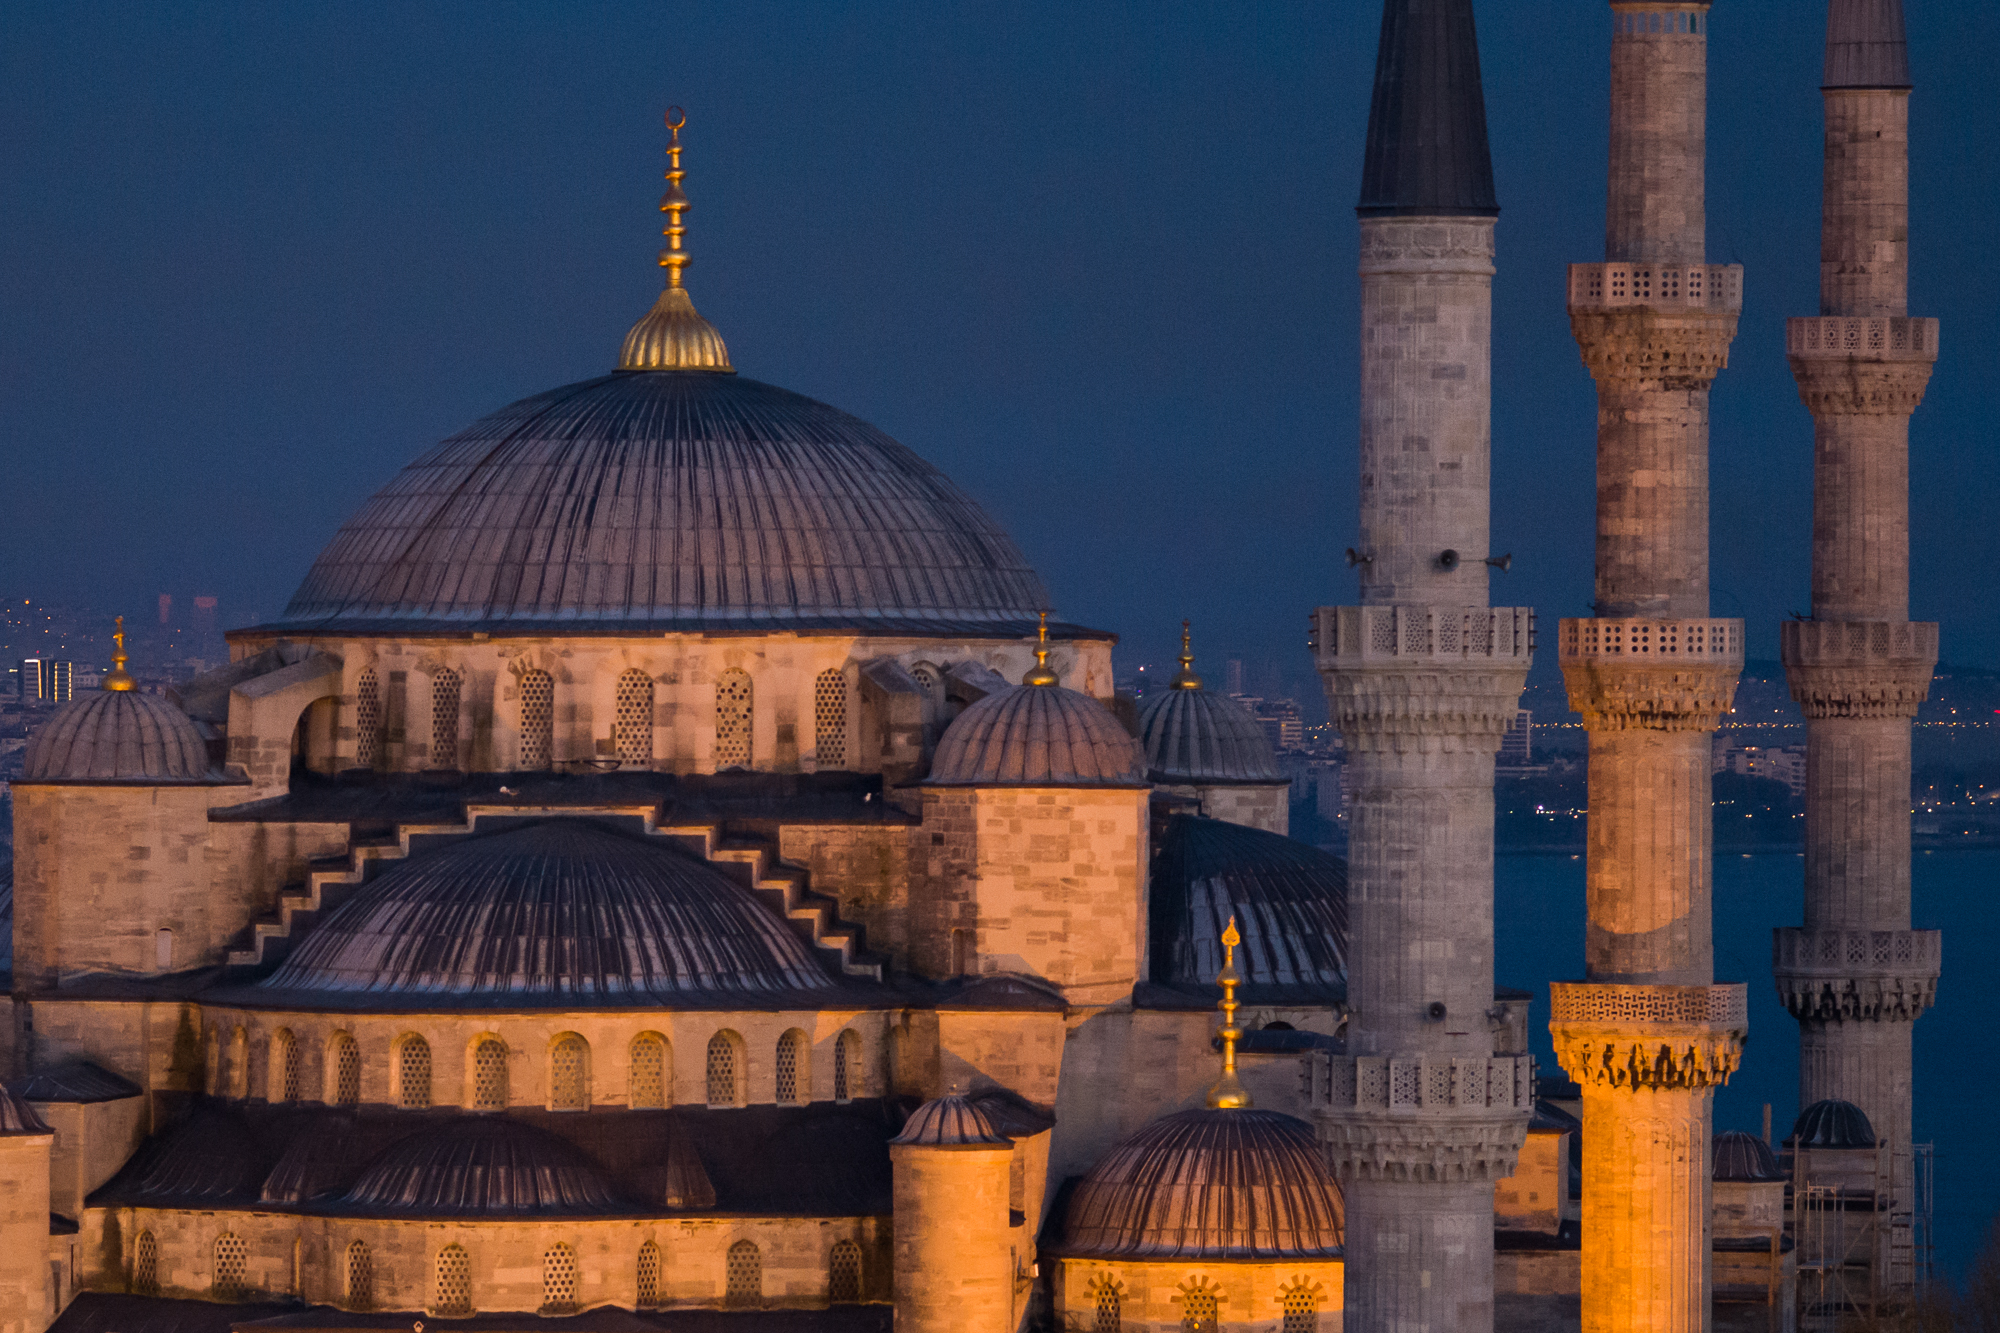 Domes and minarets of the Blue Mosque